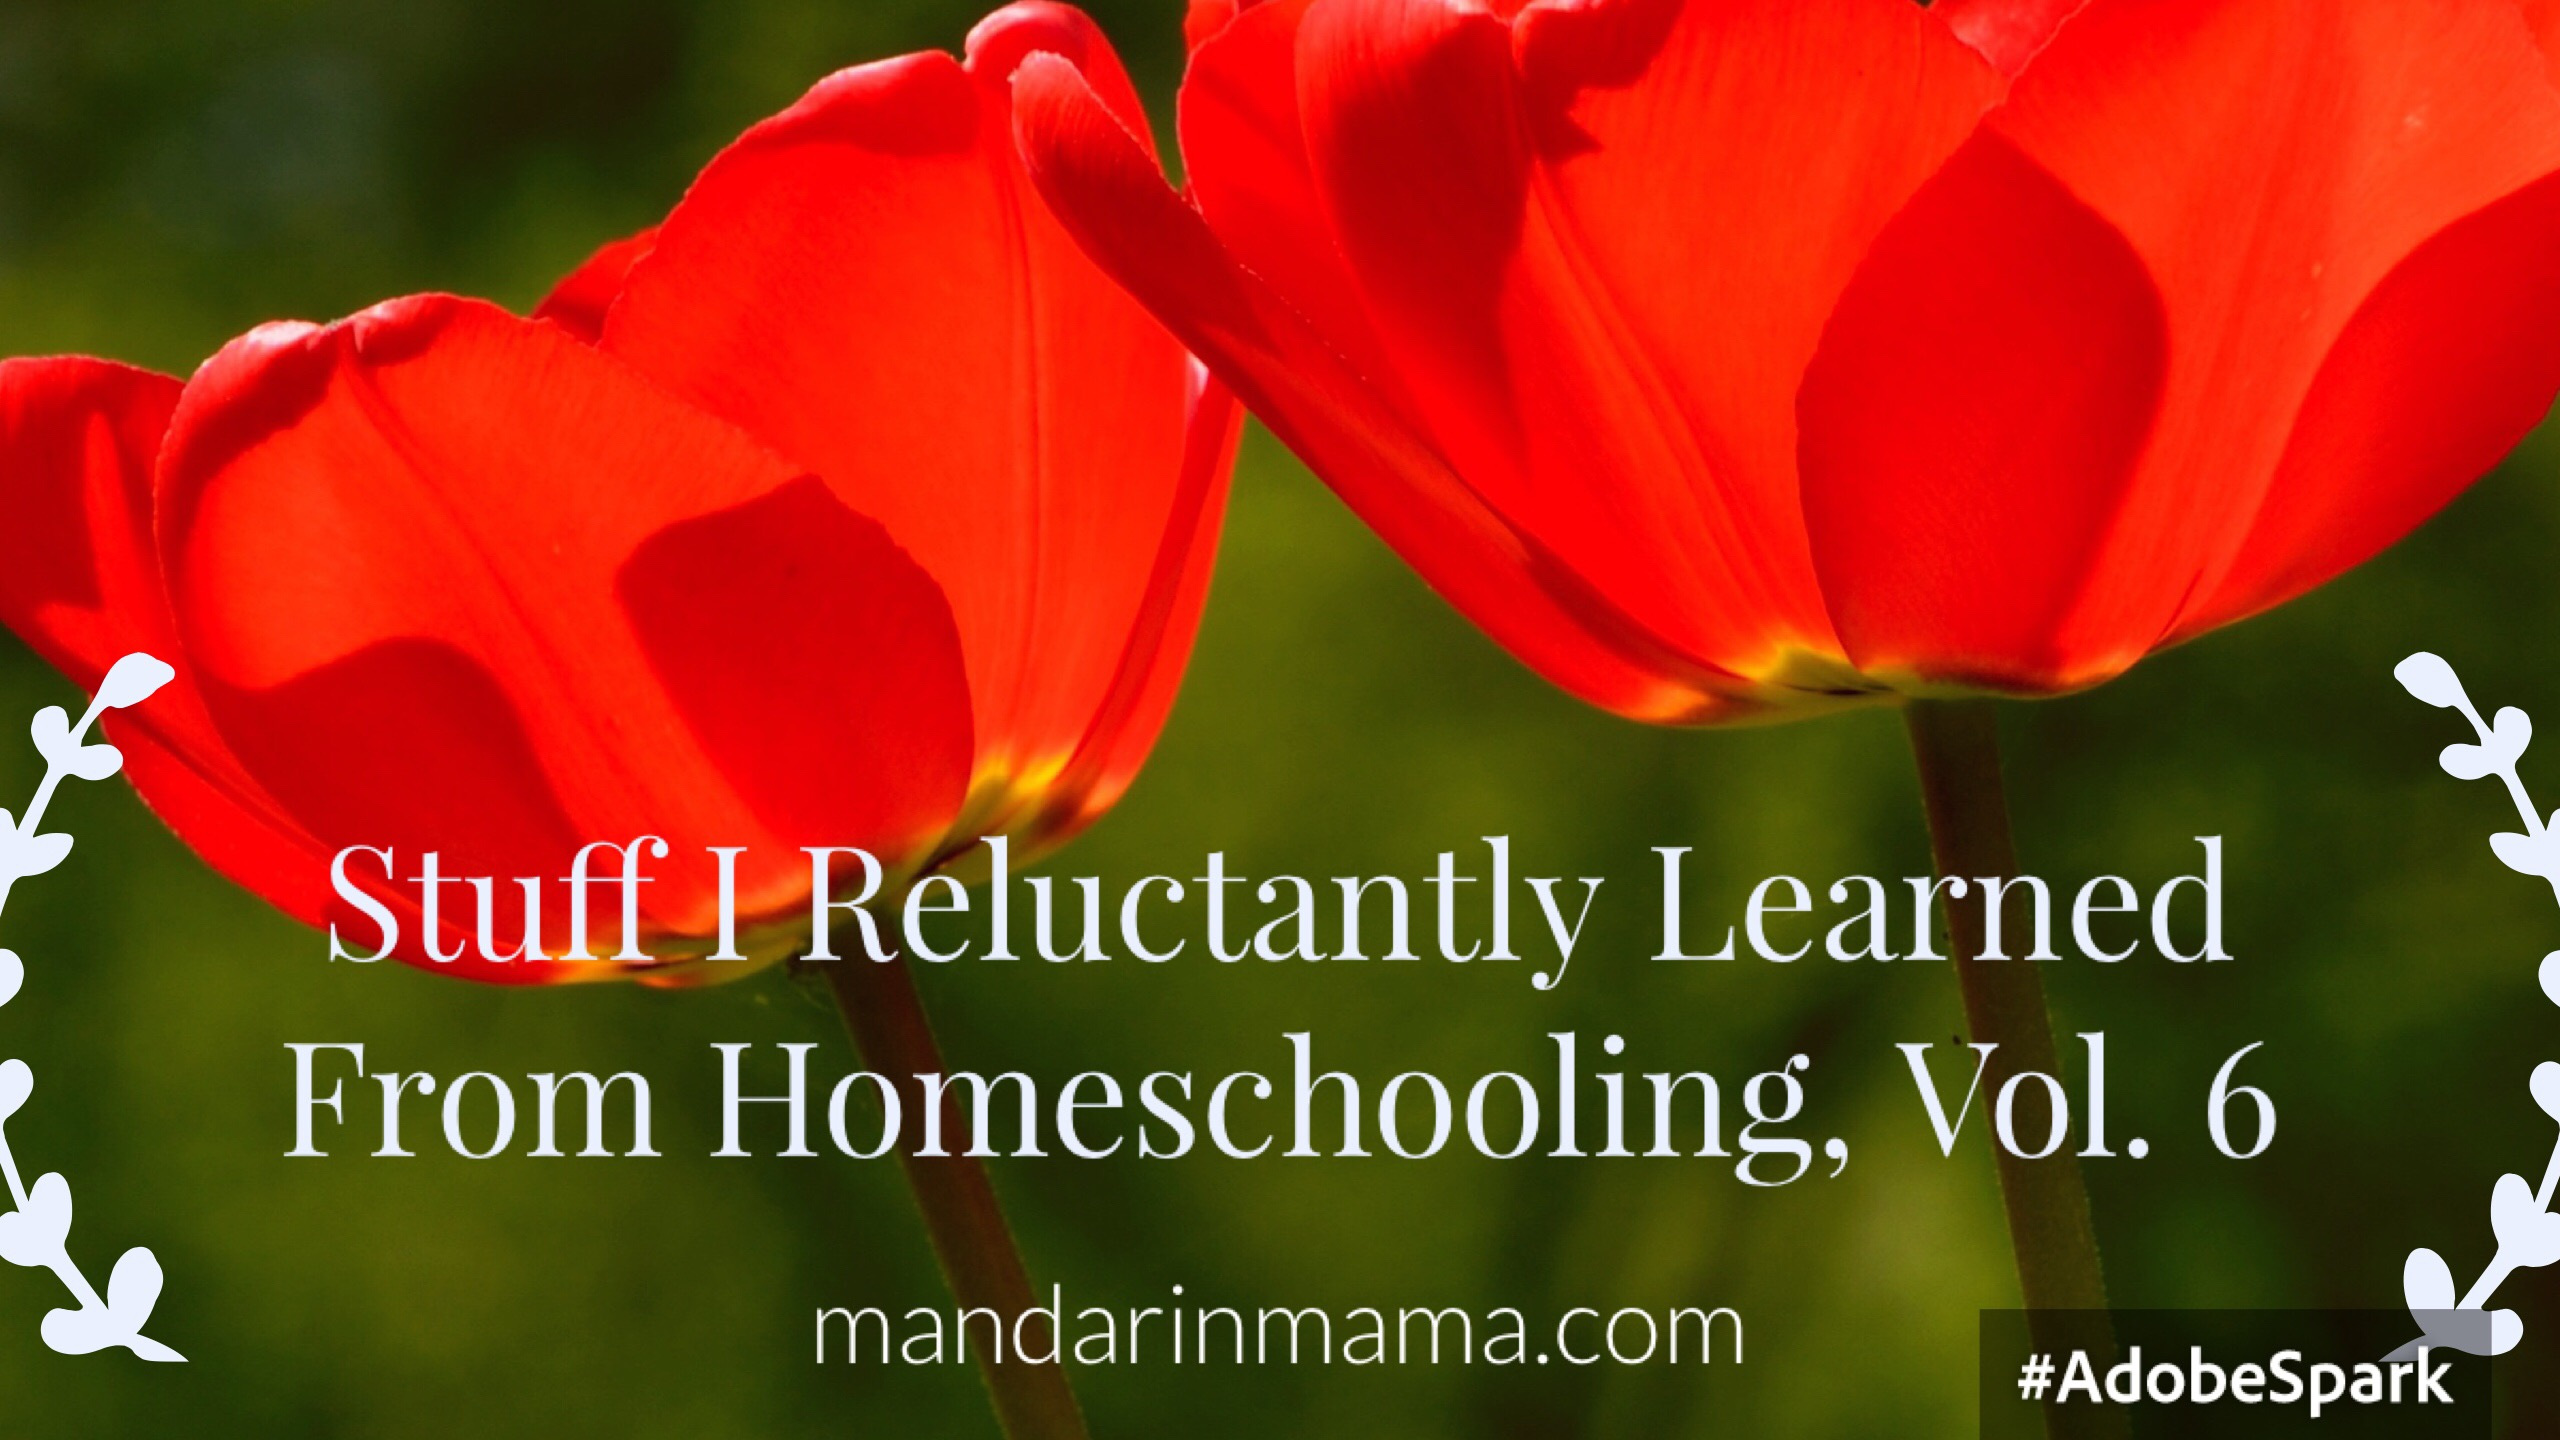 Stuff I Reluctantly Learned from Homeschooling, Vol. 6